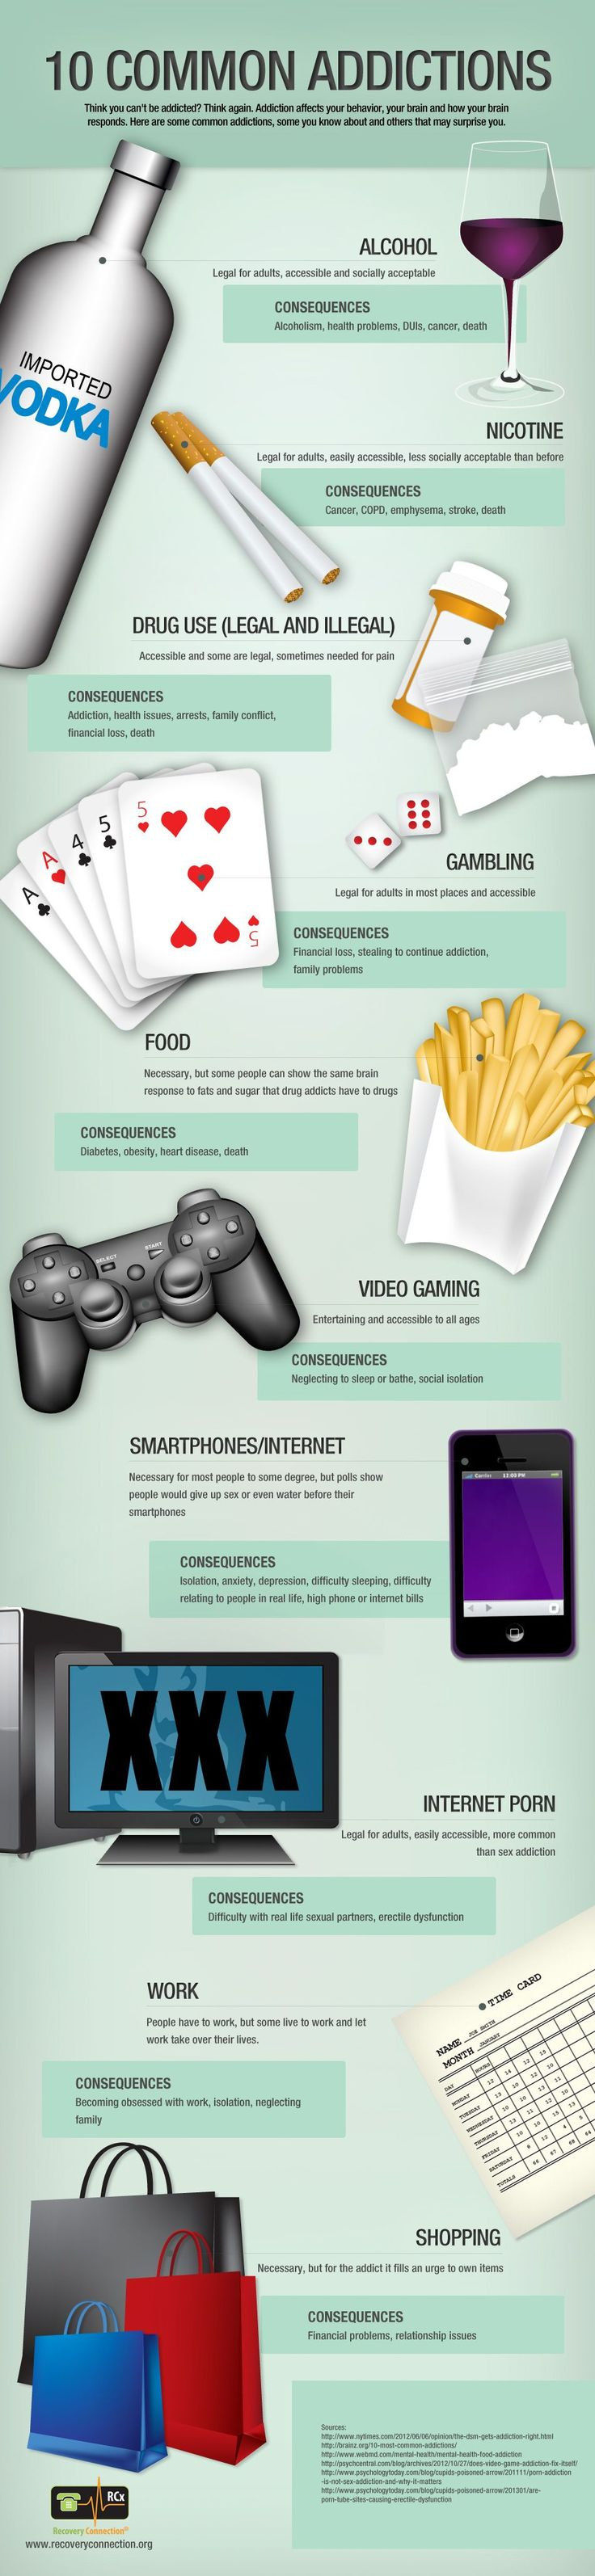 Most Common Addictions Infographic: Is Everyone Addicted to Something? #addiction